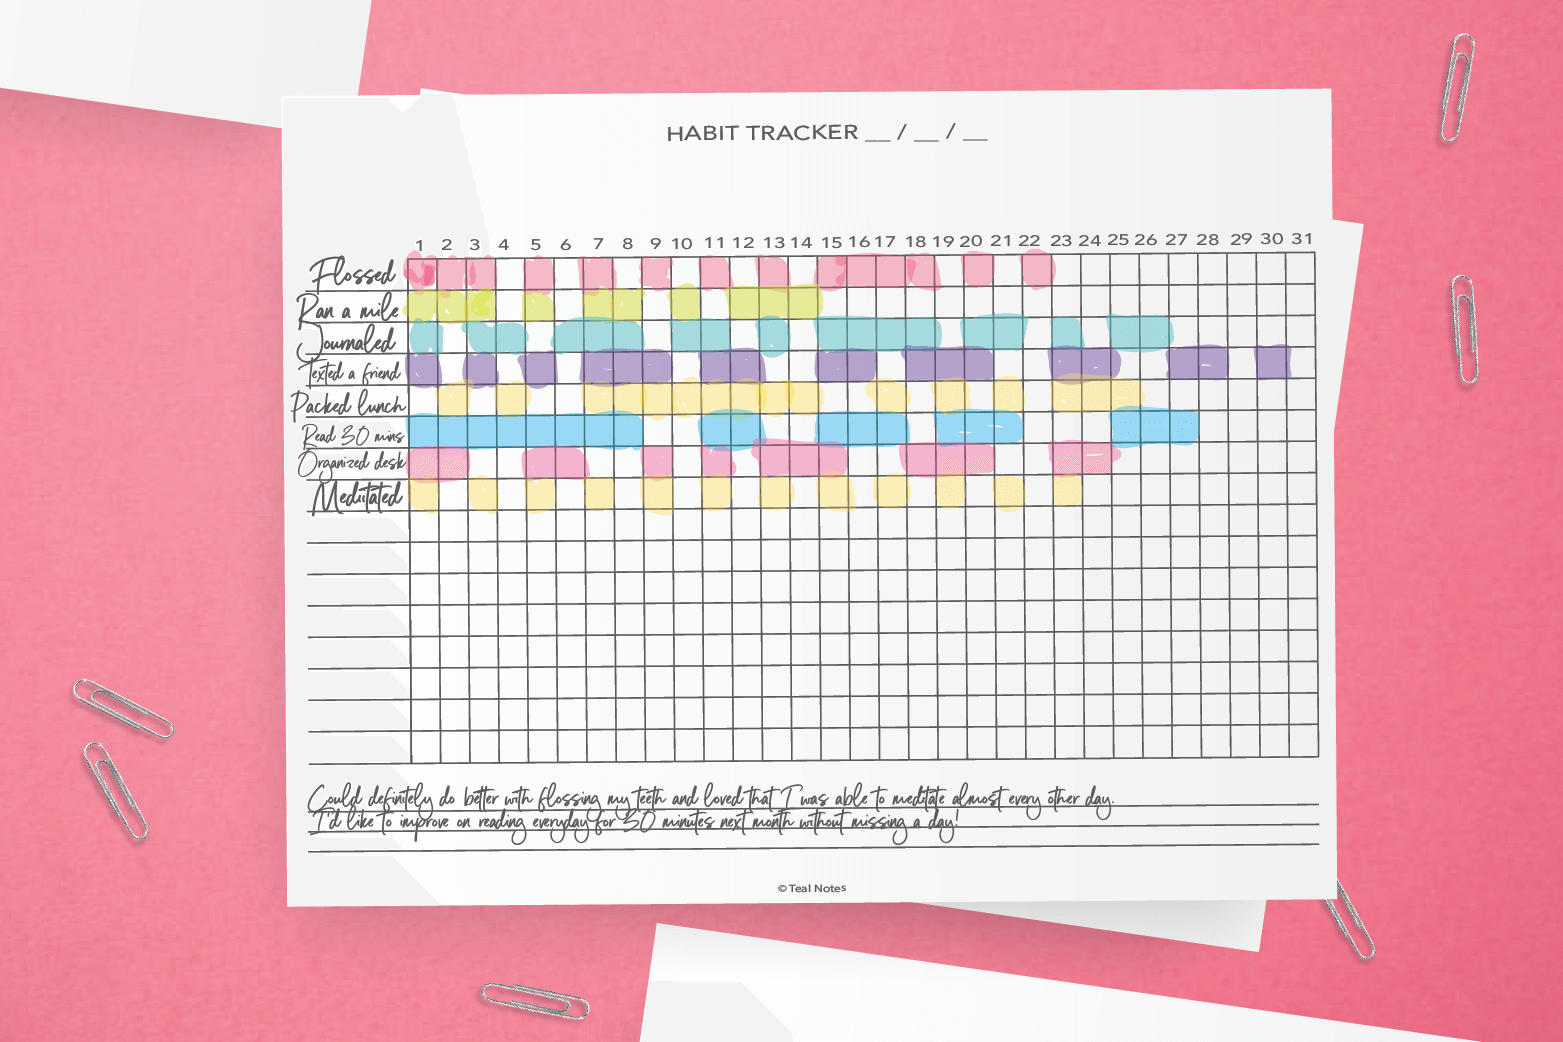 photo regarding Habit Tracker Printable Free named Free of charge Printable Pattern Tracker PDF: The Top Behavior Tracker